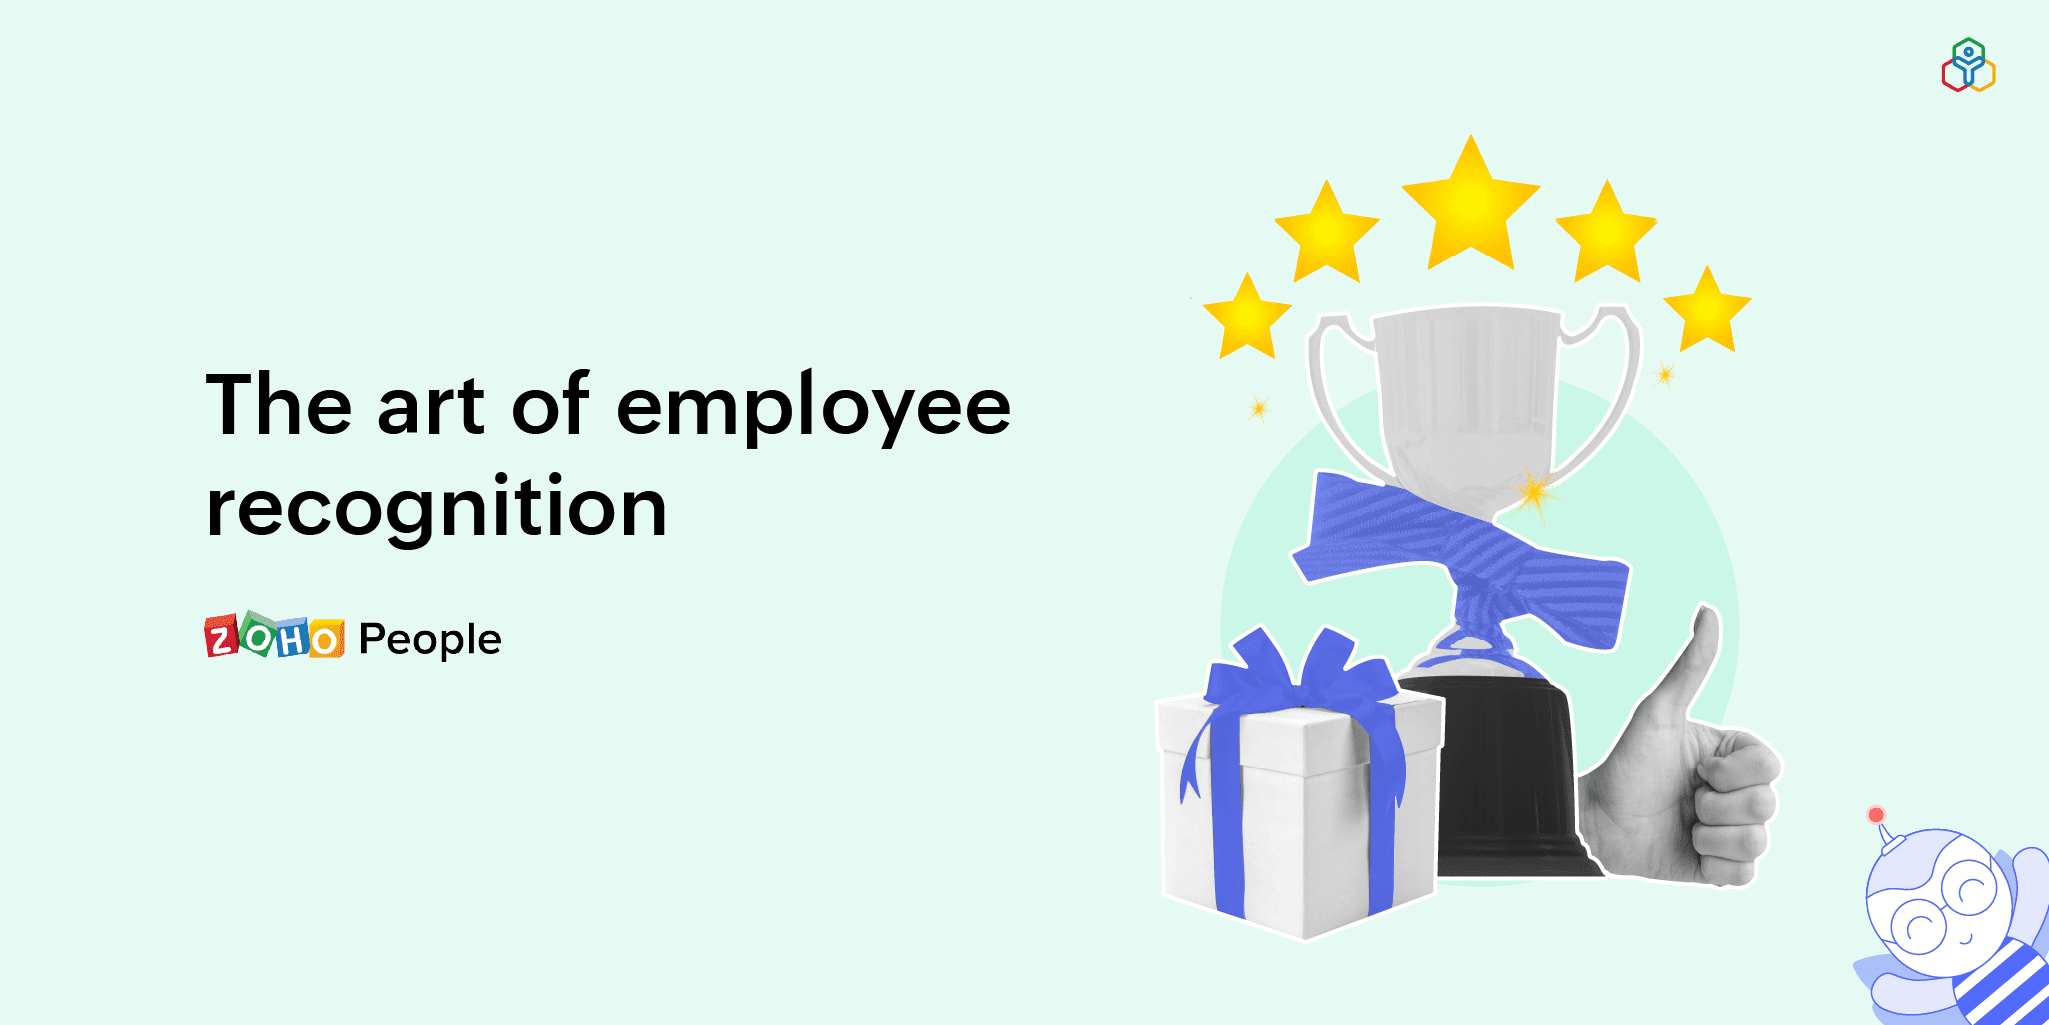 How to master the art of employee recognition